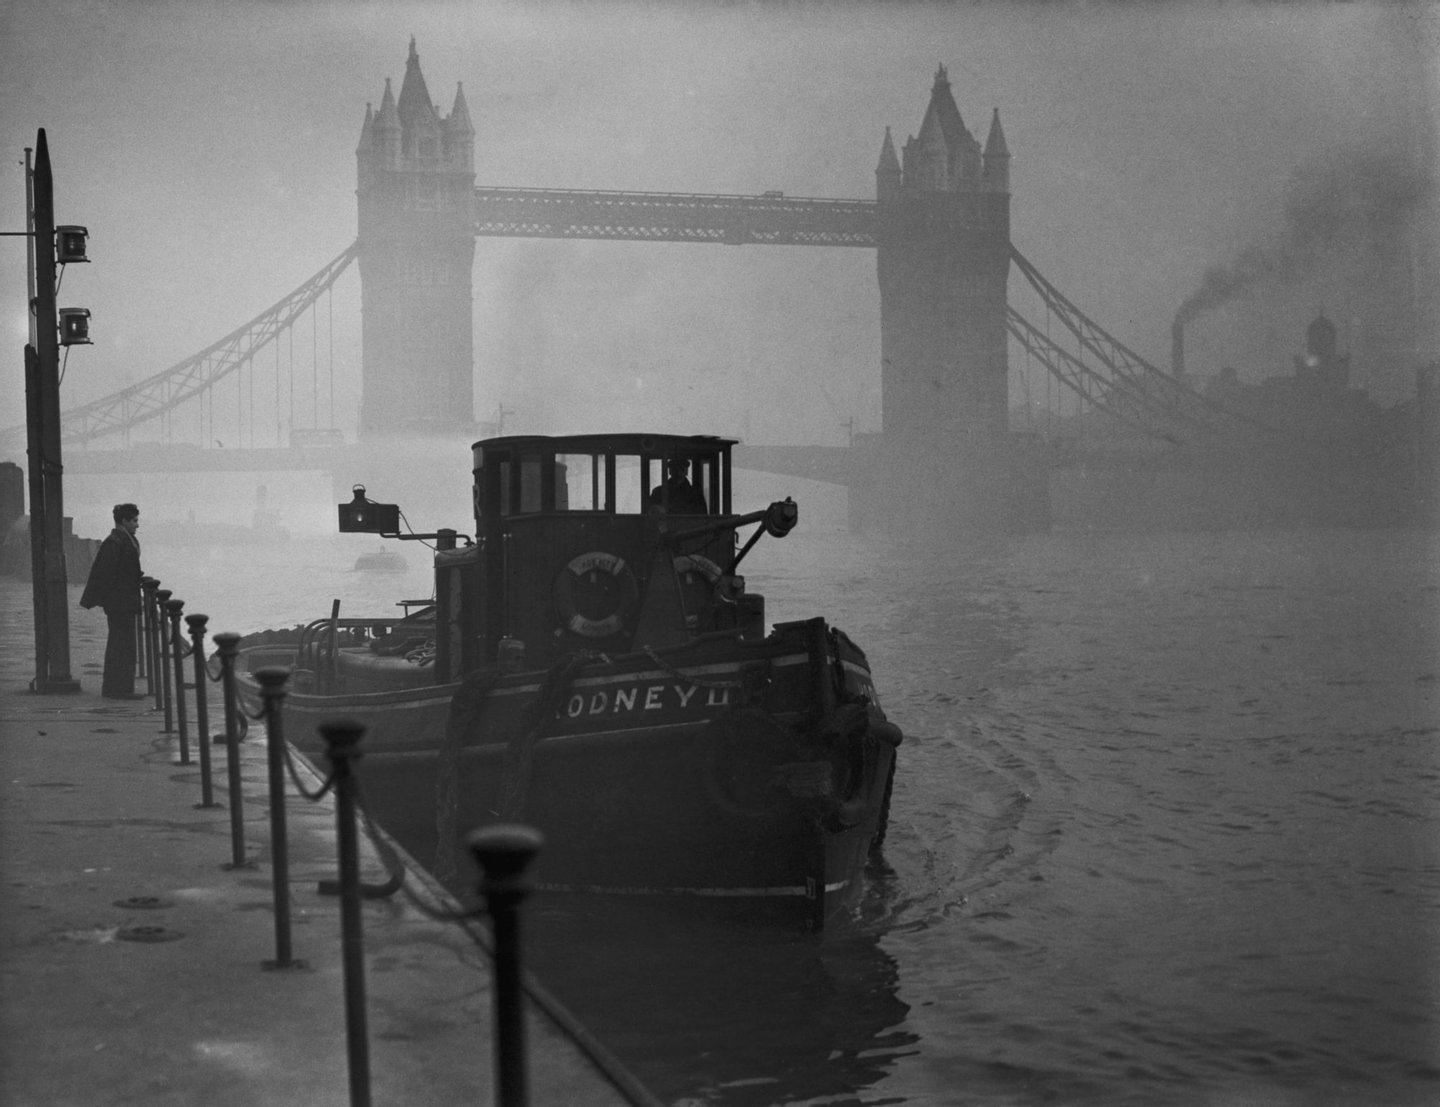 A tugboat on the Thames near Tower Bridge in heavy smog, 1952. (Photo by Fox Photos/Hulton Archive/Getty Images)